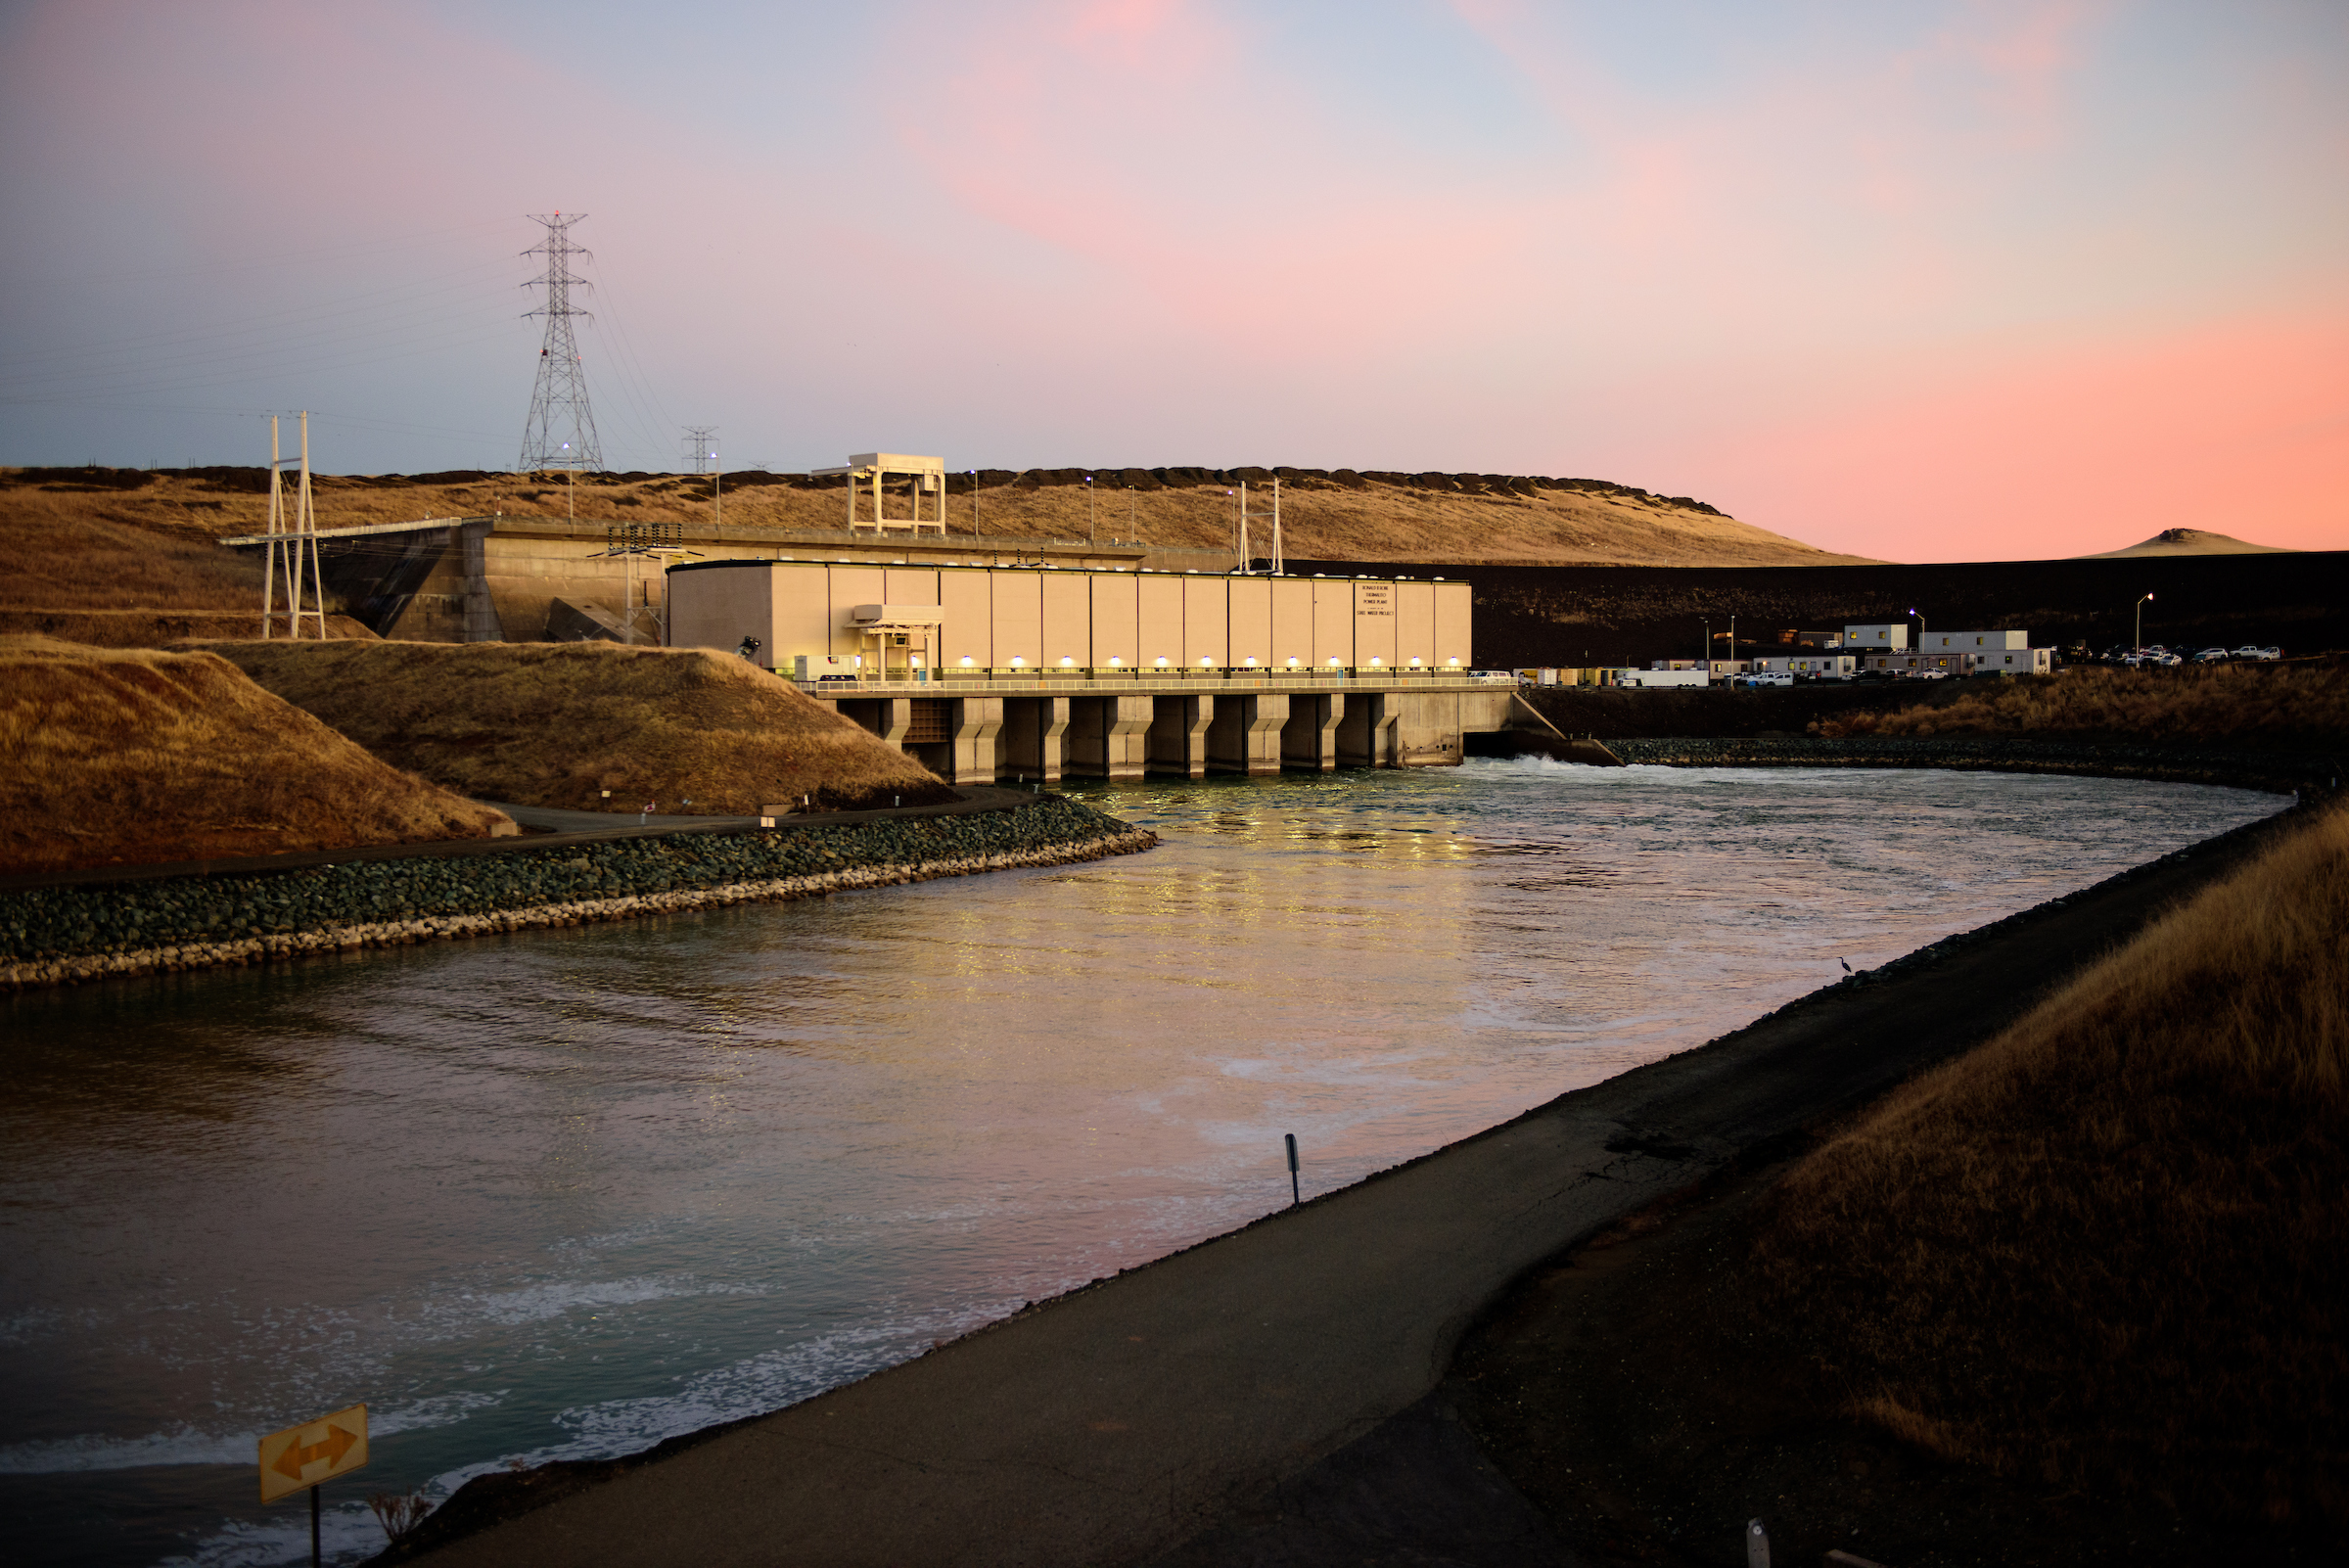 A morning sunrise over the Ronald B. Robie Thermalito Pumping-Generating Plant, located at the Thermalito Afterbay.